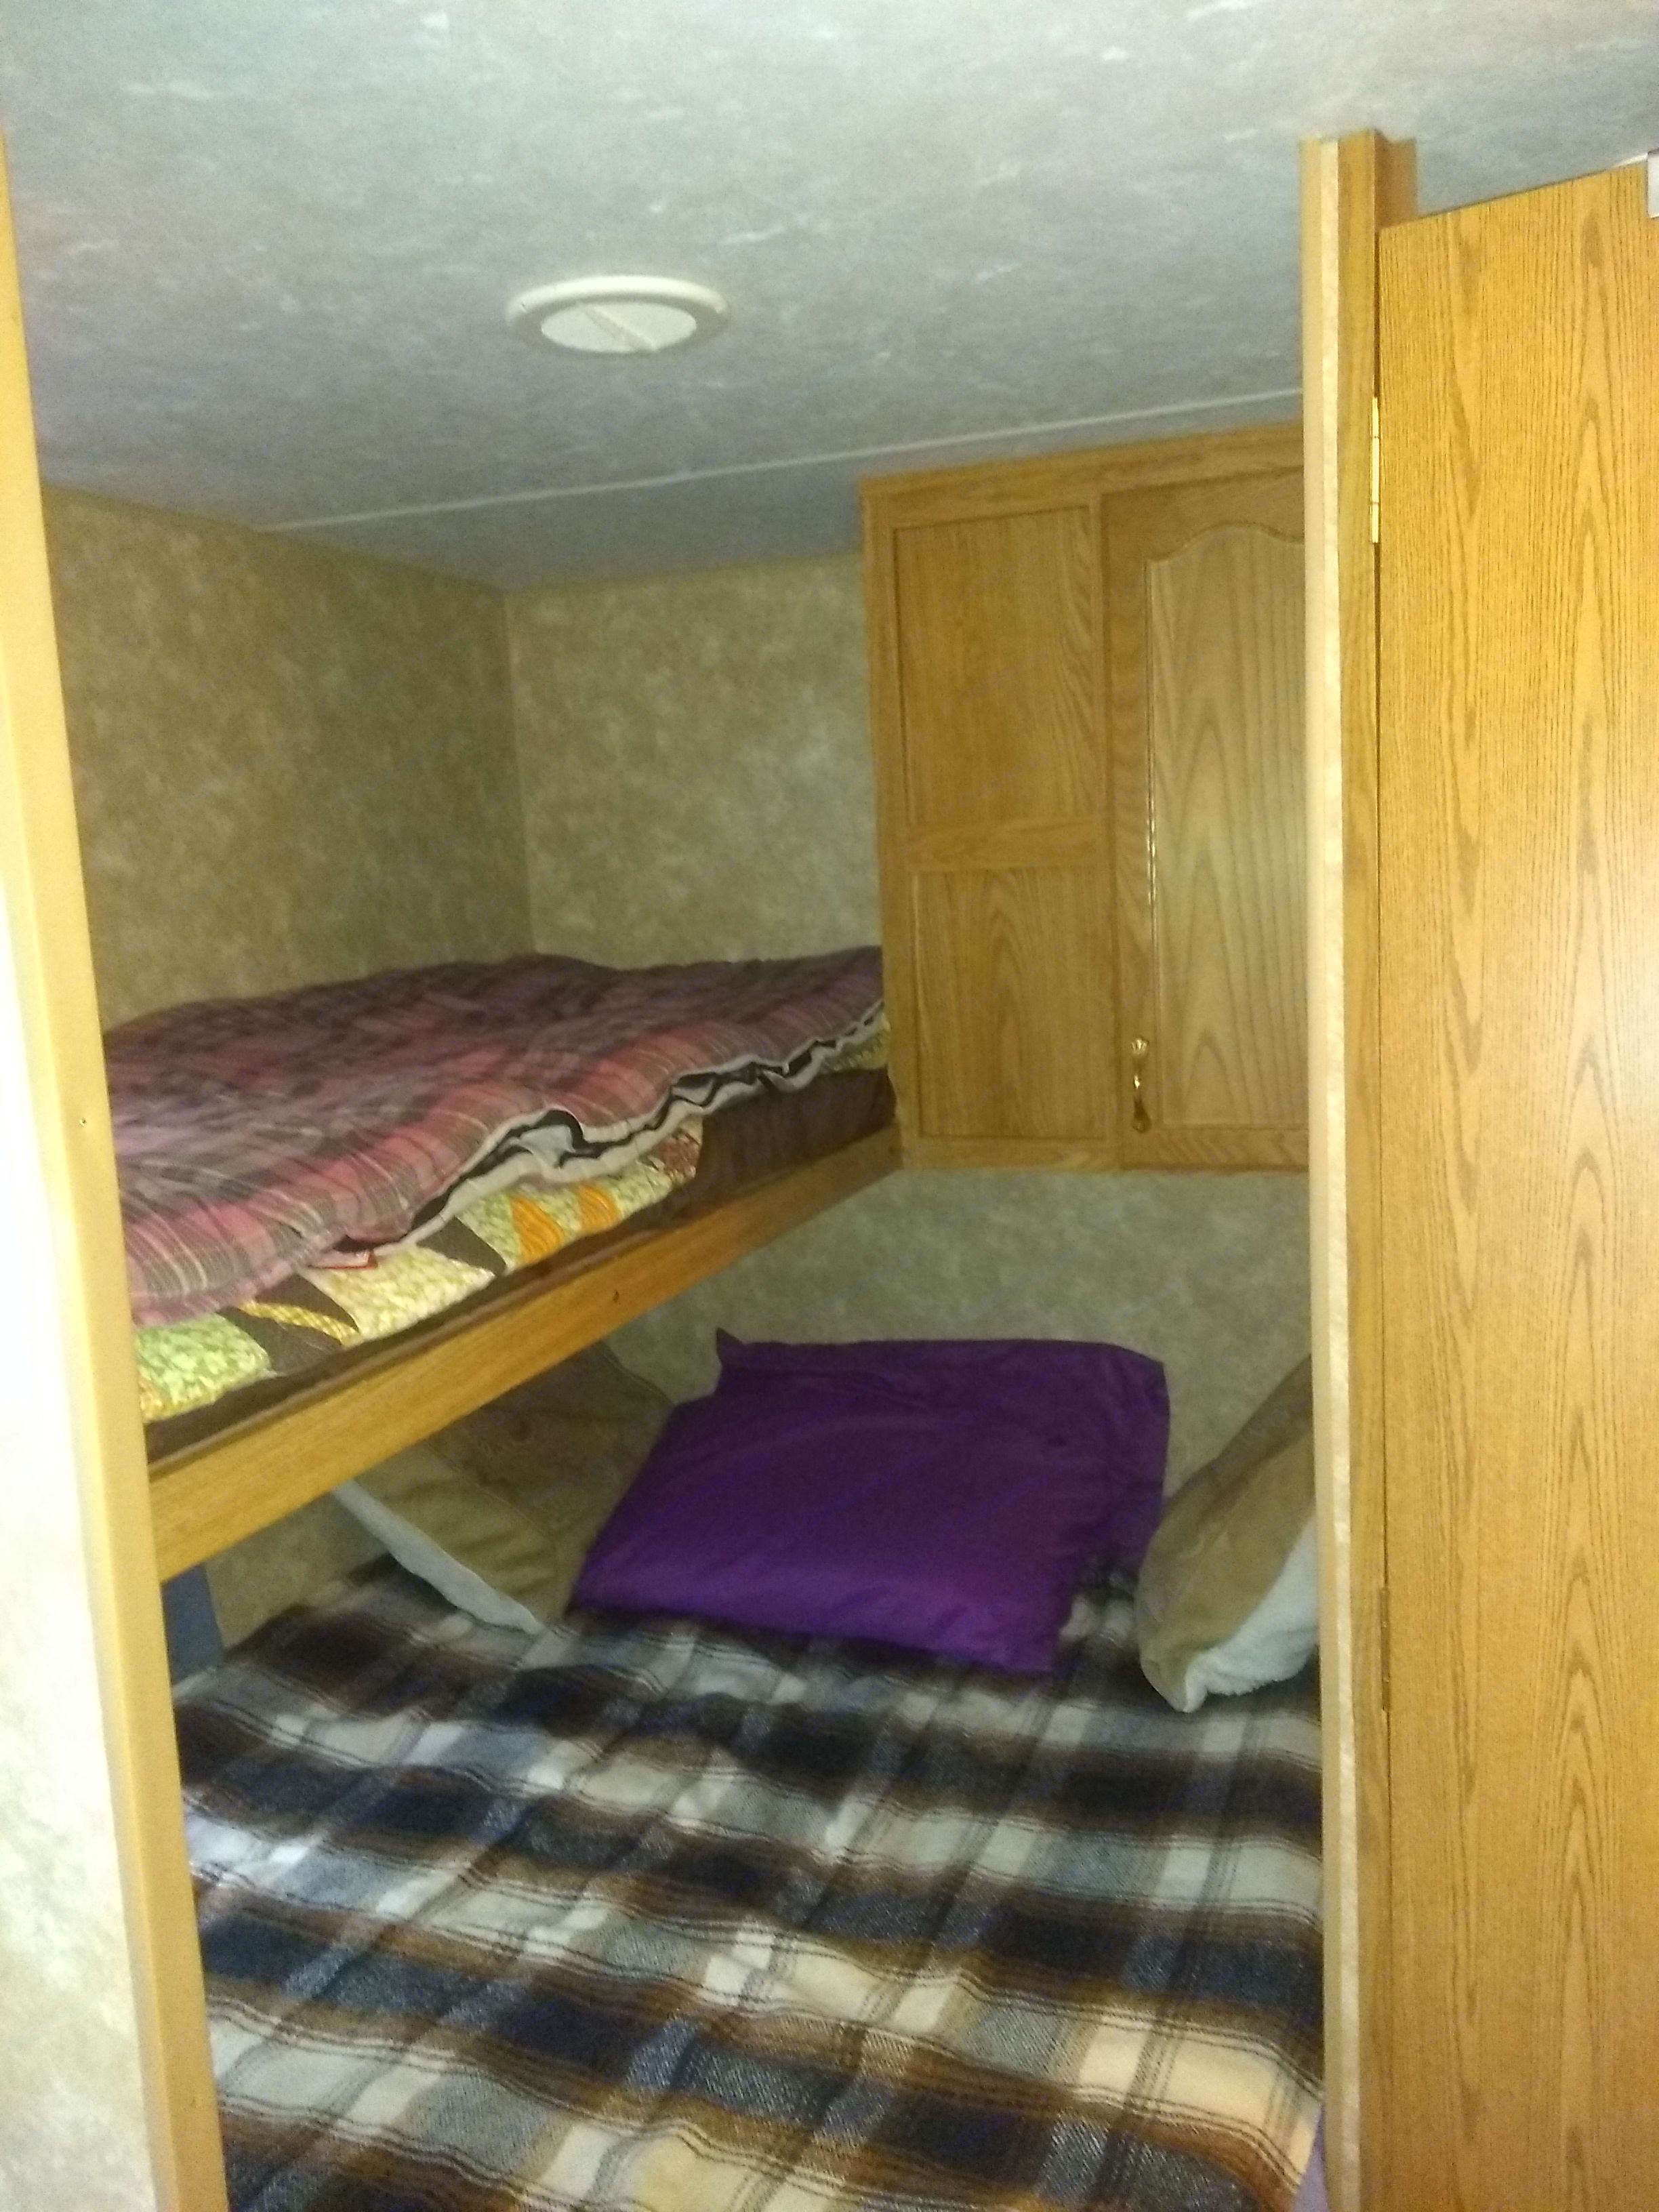 Main bed sleeps  2 adults, w/ bunk bed above. Sleeps one adult or two kids. Jayco Riverside 2006